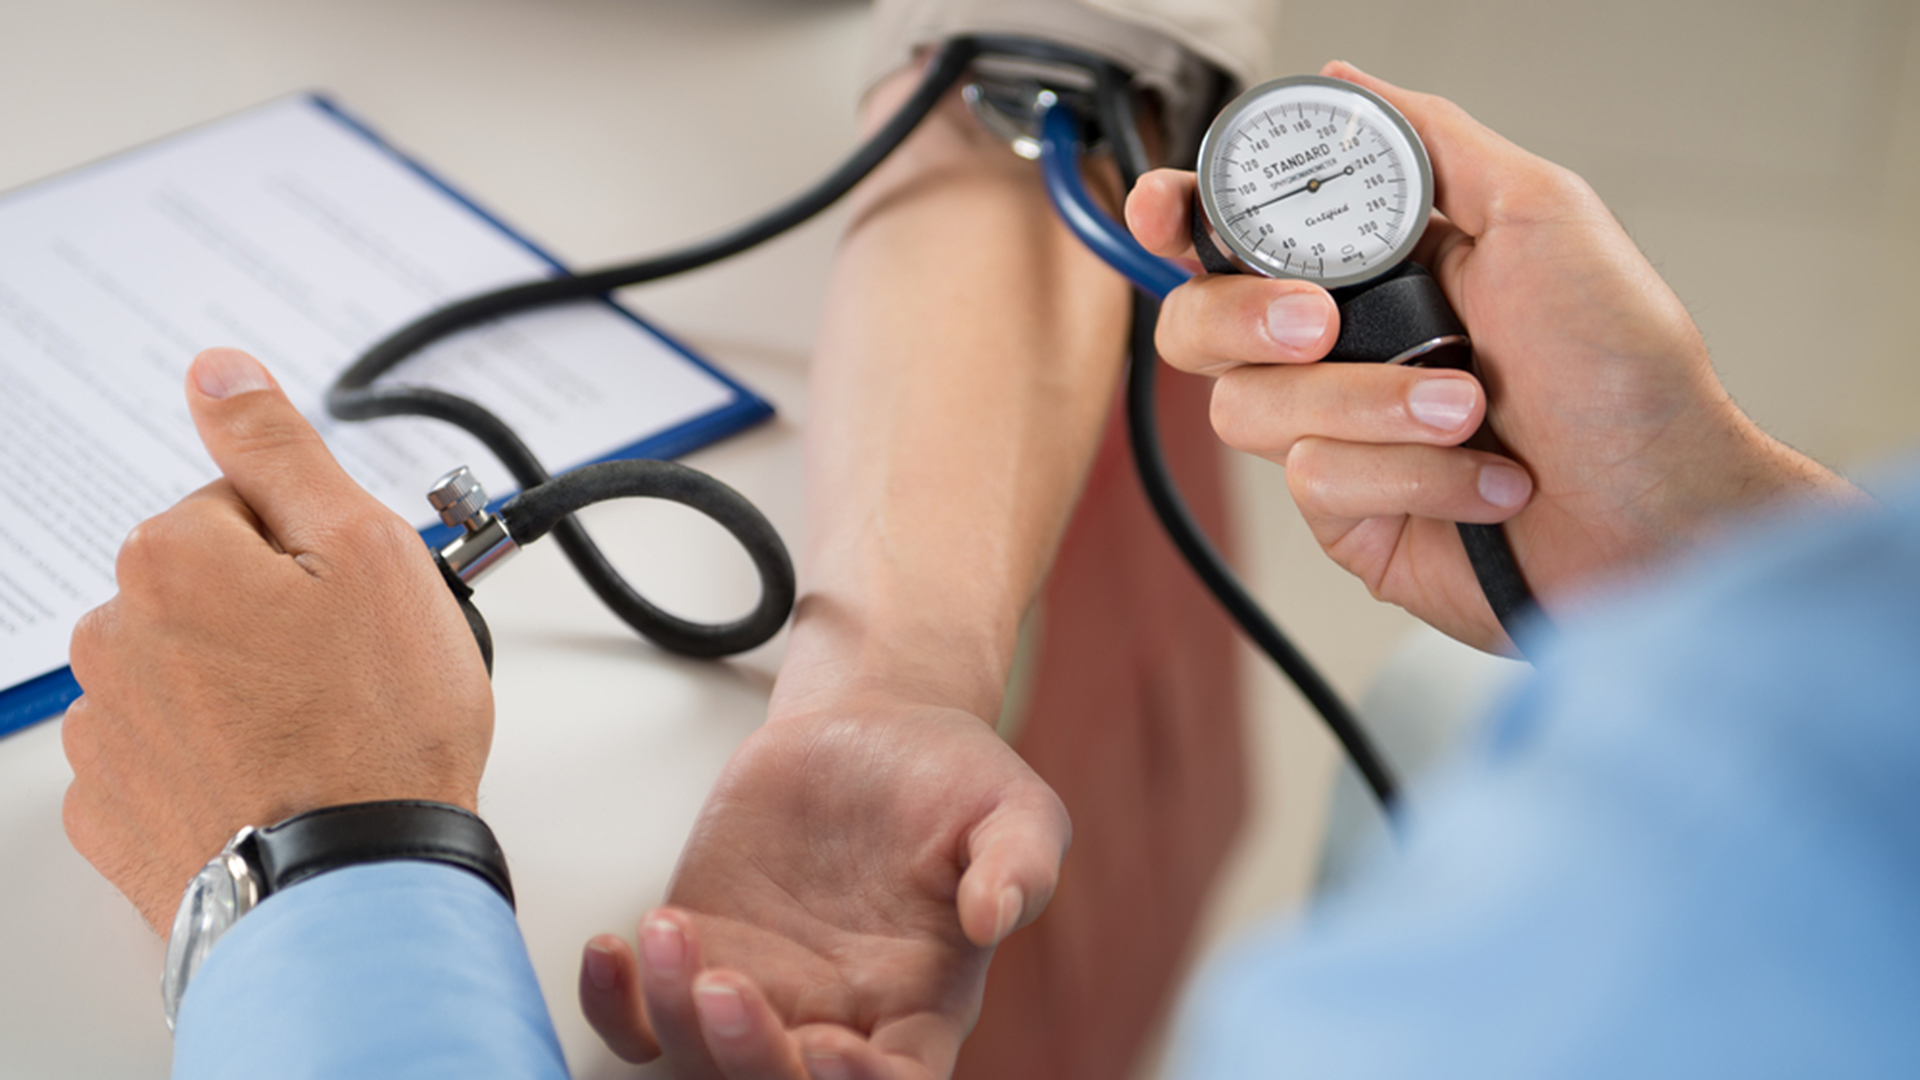 Blood pressure should be taken in both arms